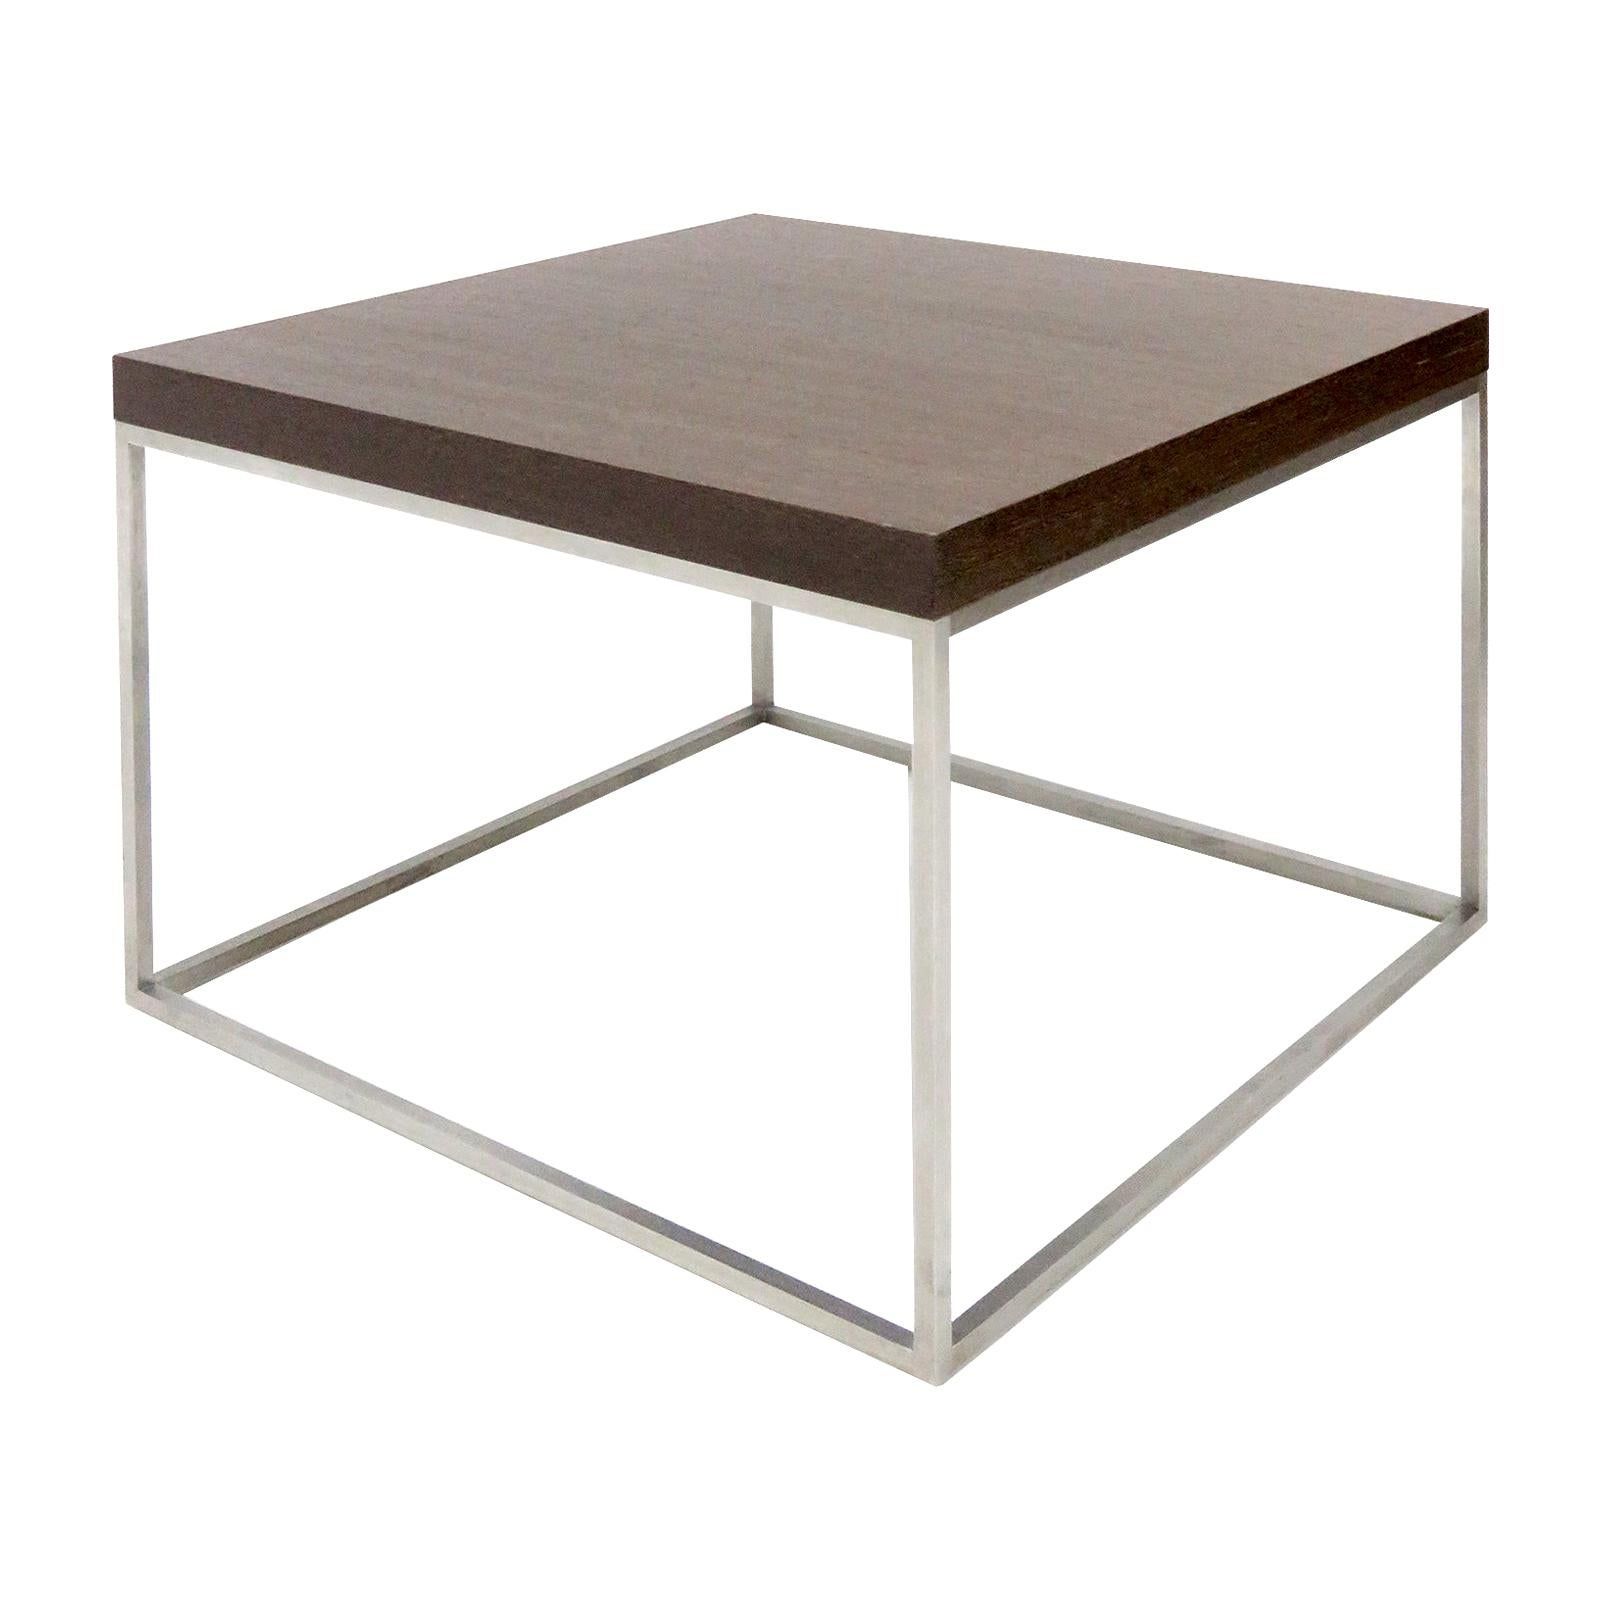 Paolo Piva 'Madison Square' Coffee Table